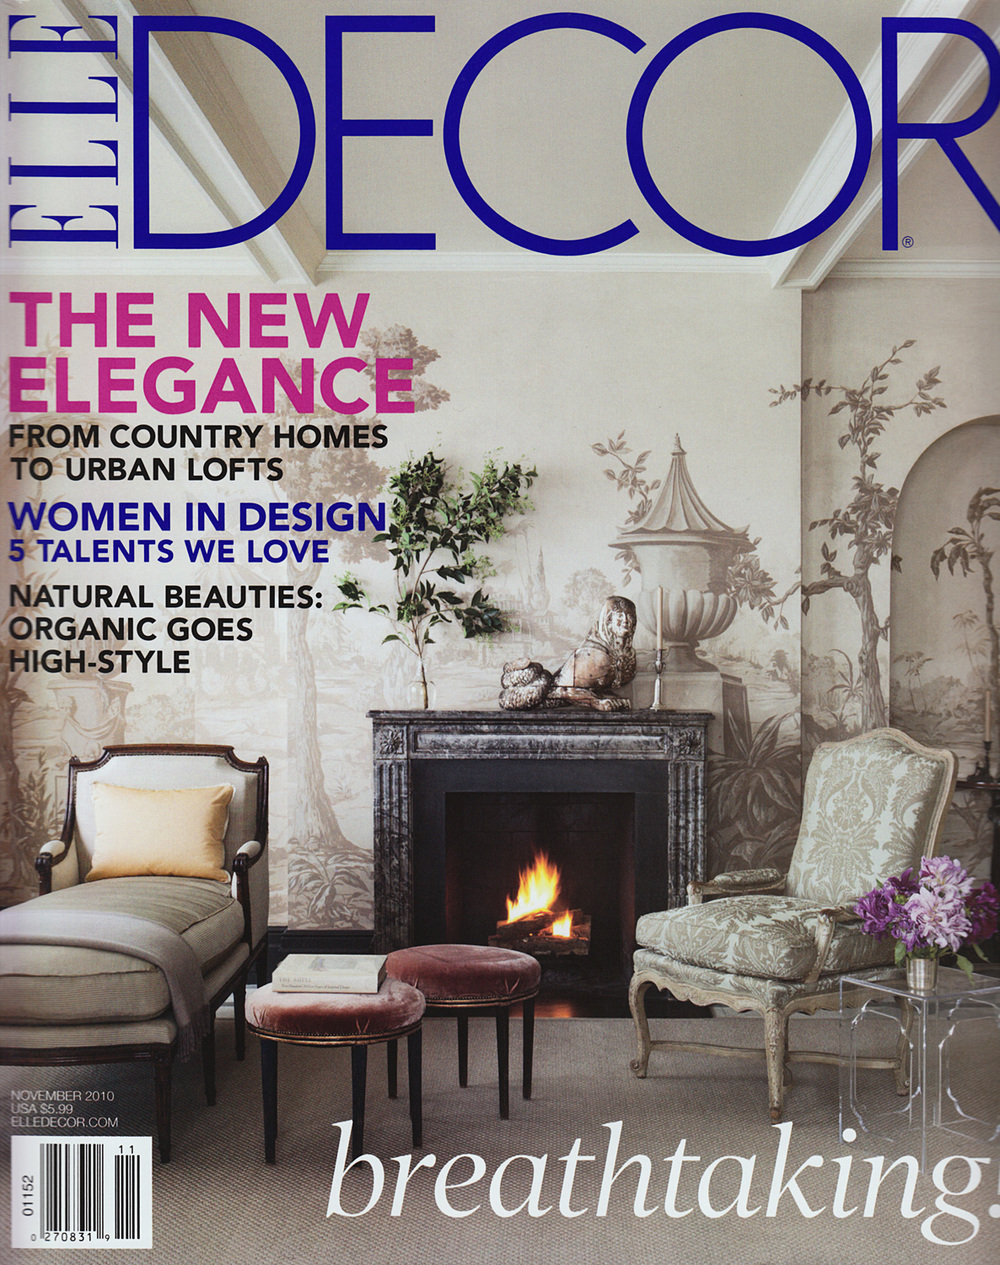 1-elle-decor-ochre-cover-niche-modern-feature.jpg